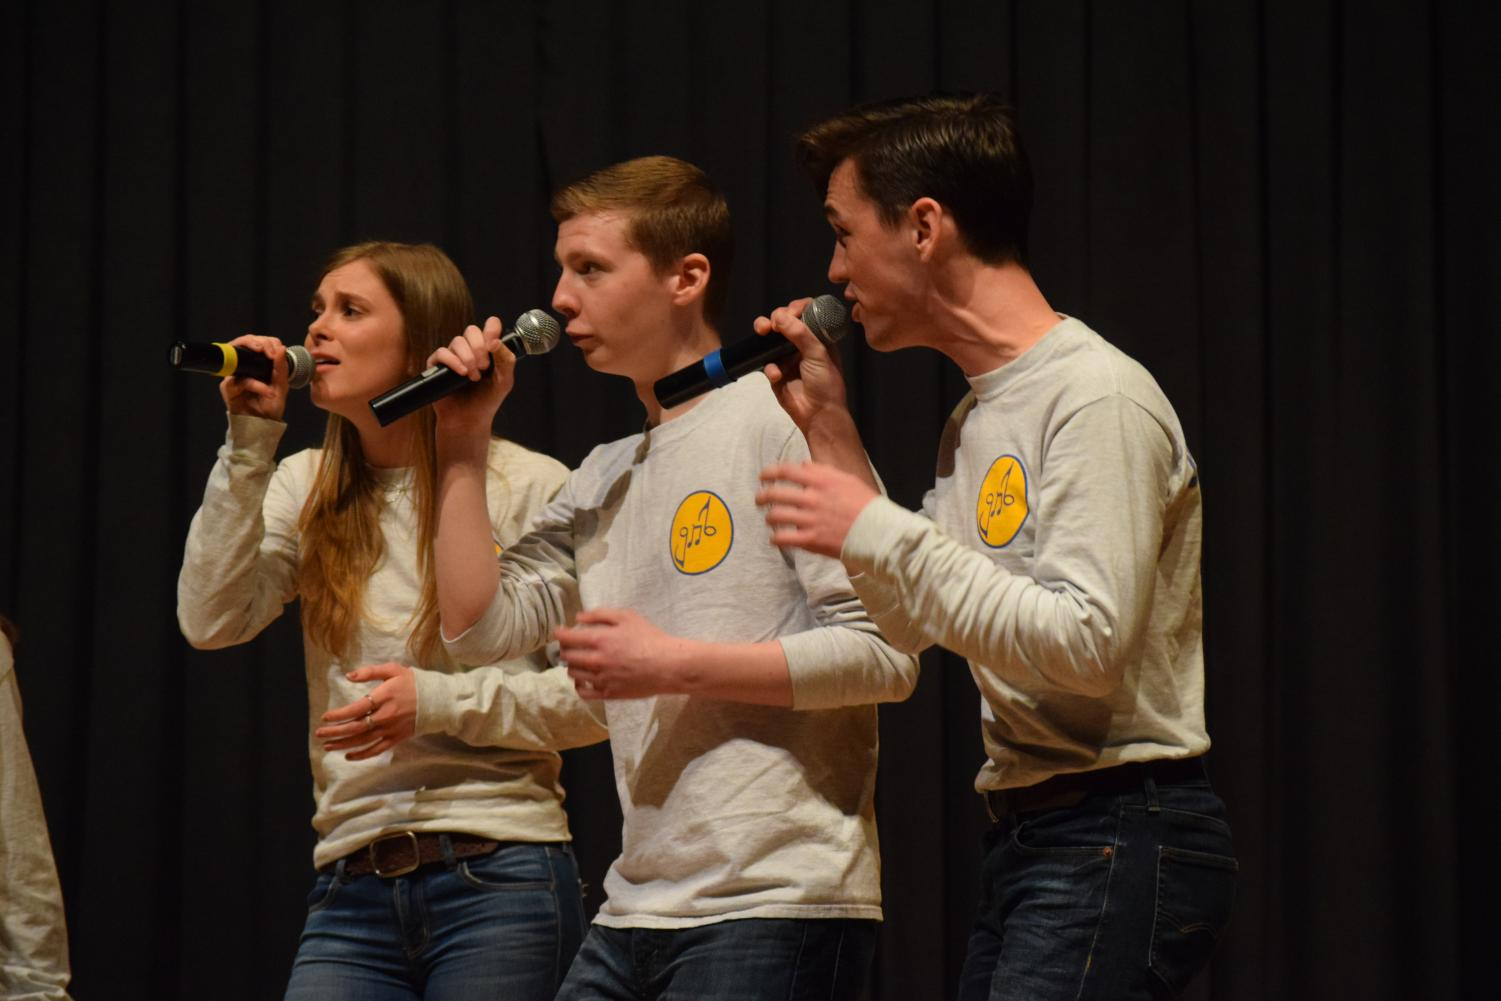 Gold 'n Blues seniors will get to perform their own solo songs as well as taking part in the group performances.